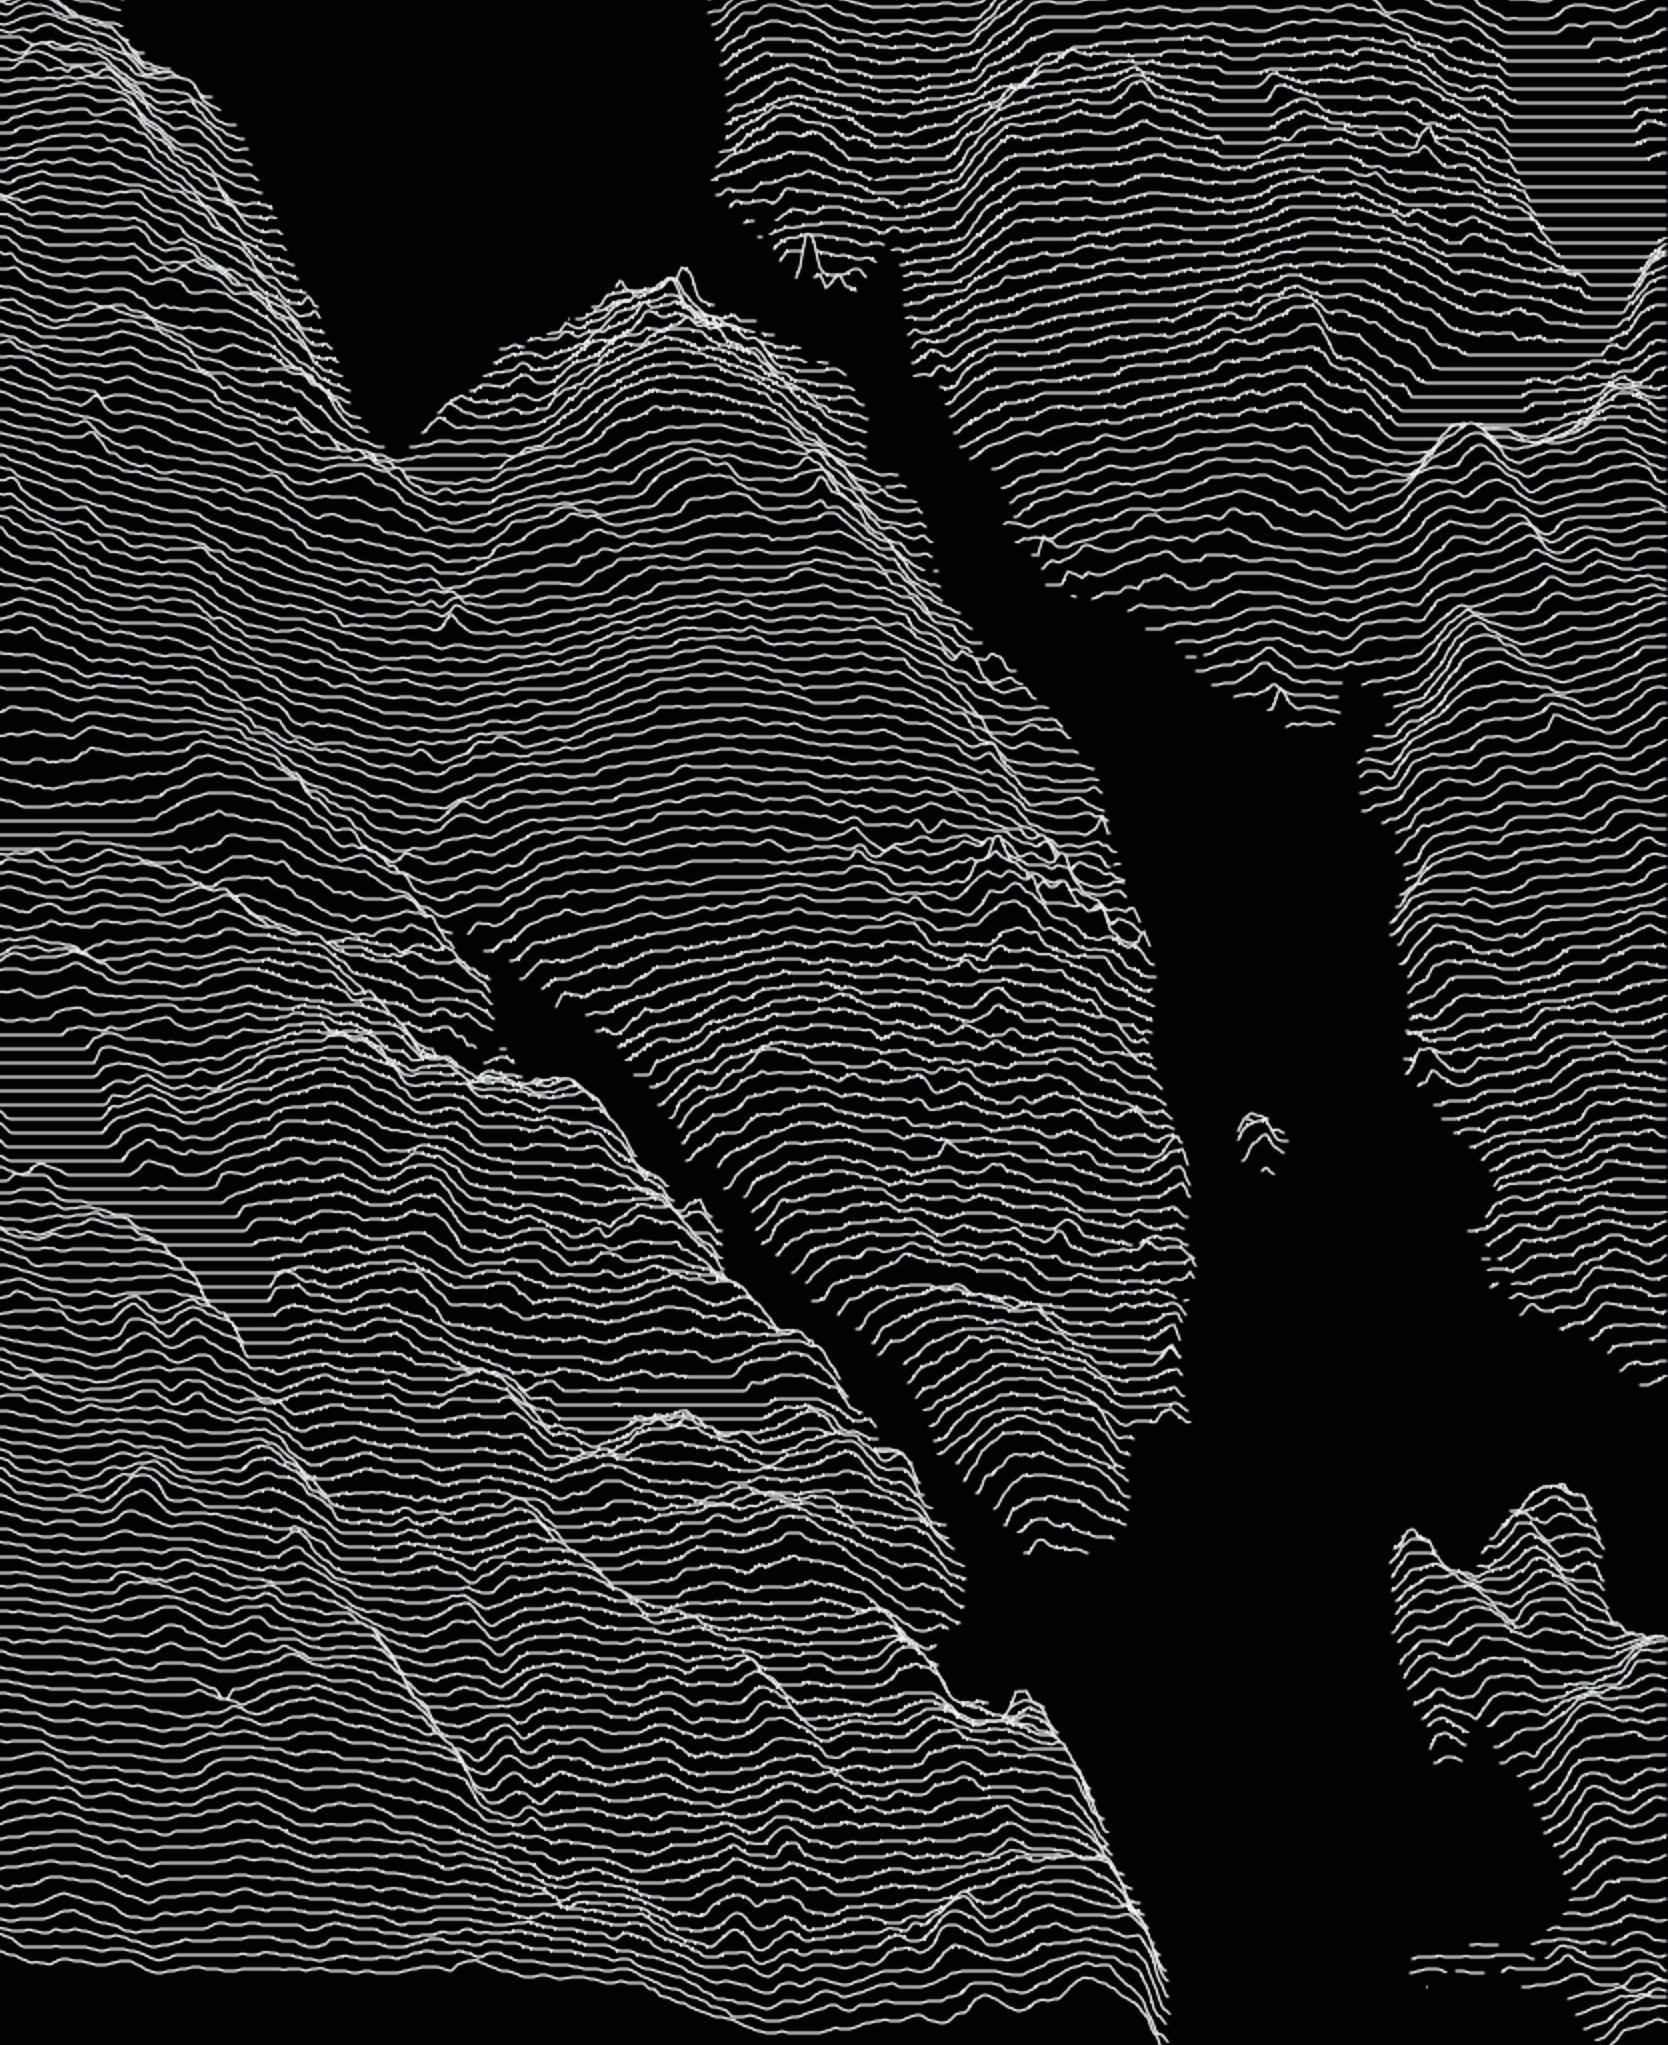 A ridgeline plot of the Halifax peninsula made using elevation plotting.